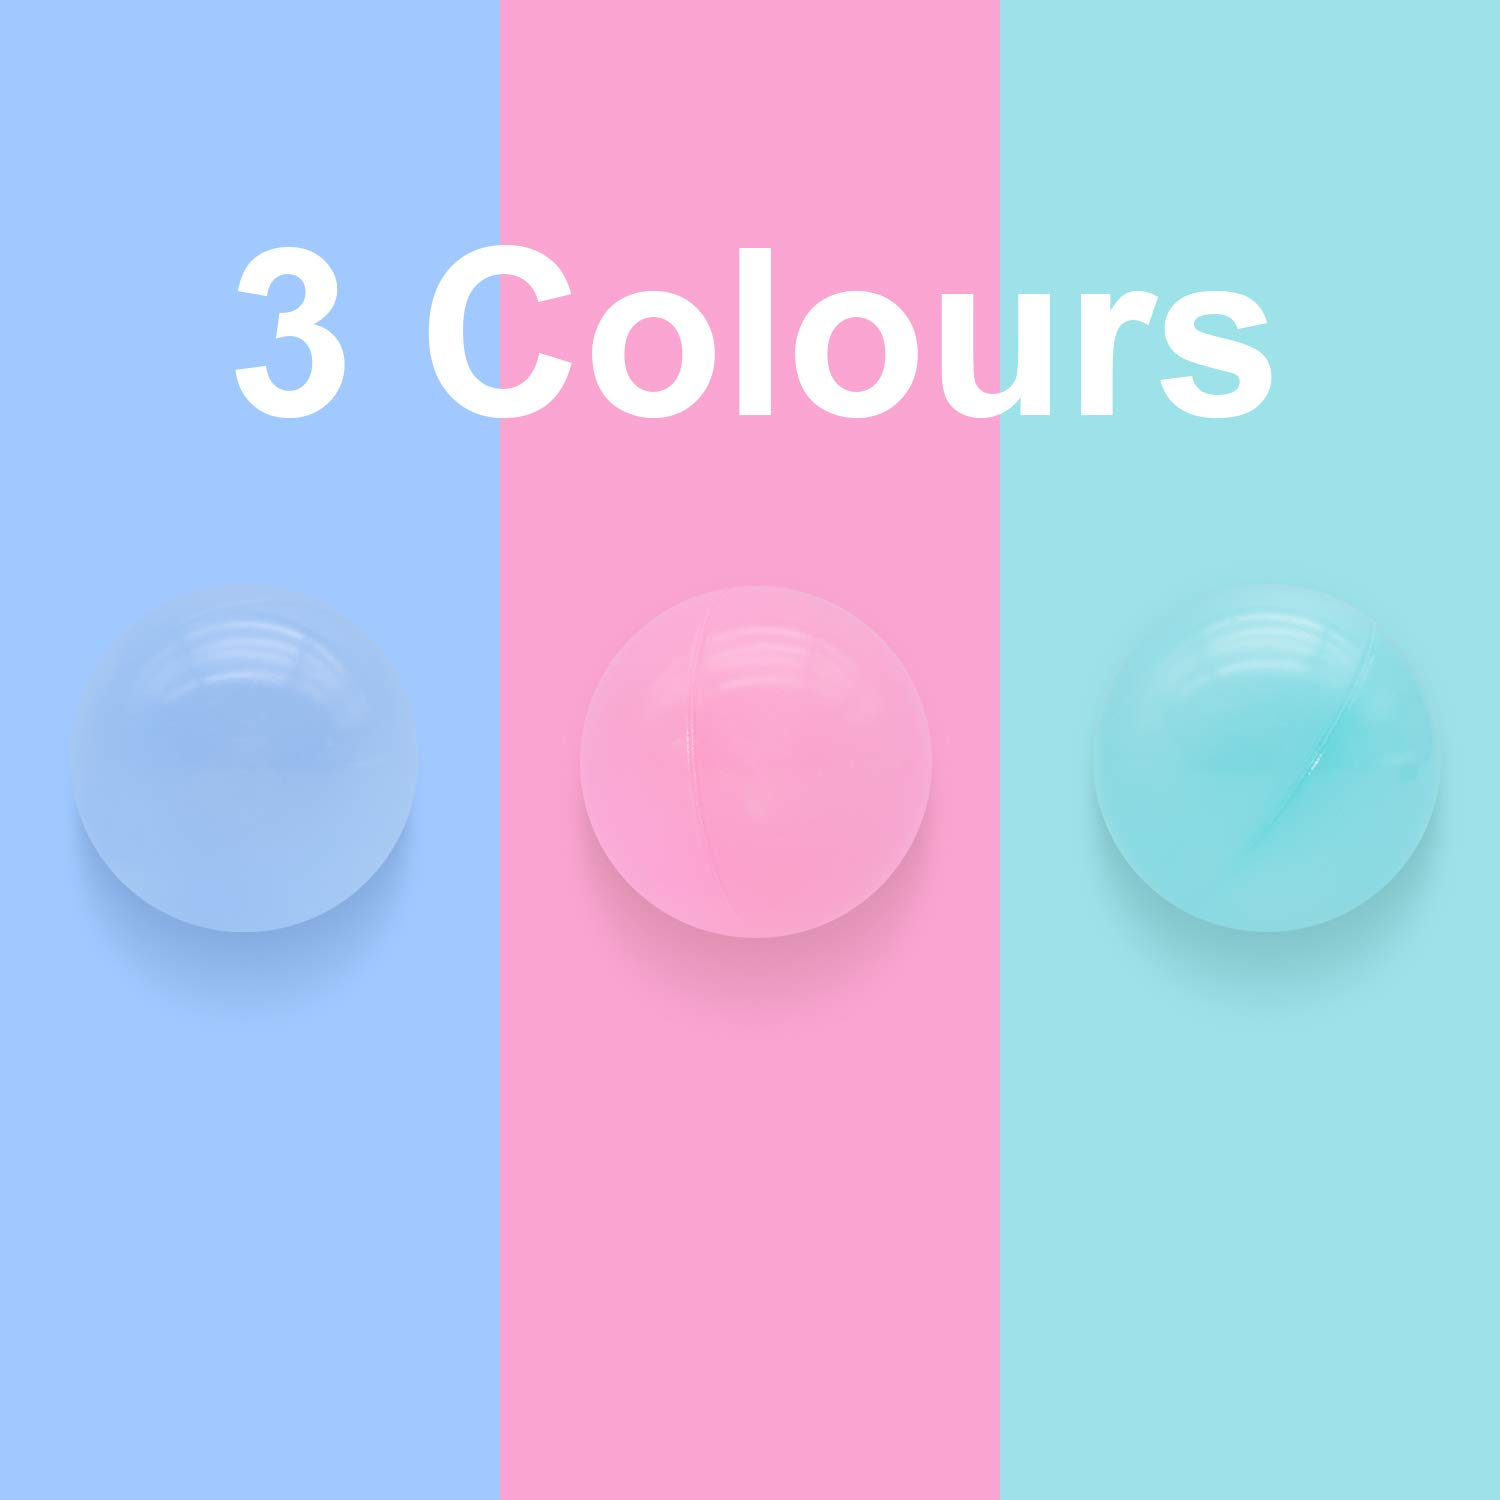 3 Macaron Colors Pit Balls Non-Toxic Free BPA Soft Plastic Balls for Ball Pit Play Tent Baby Playhouse Pool Birthday Party Decoration TRENDBOX 100 Ball